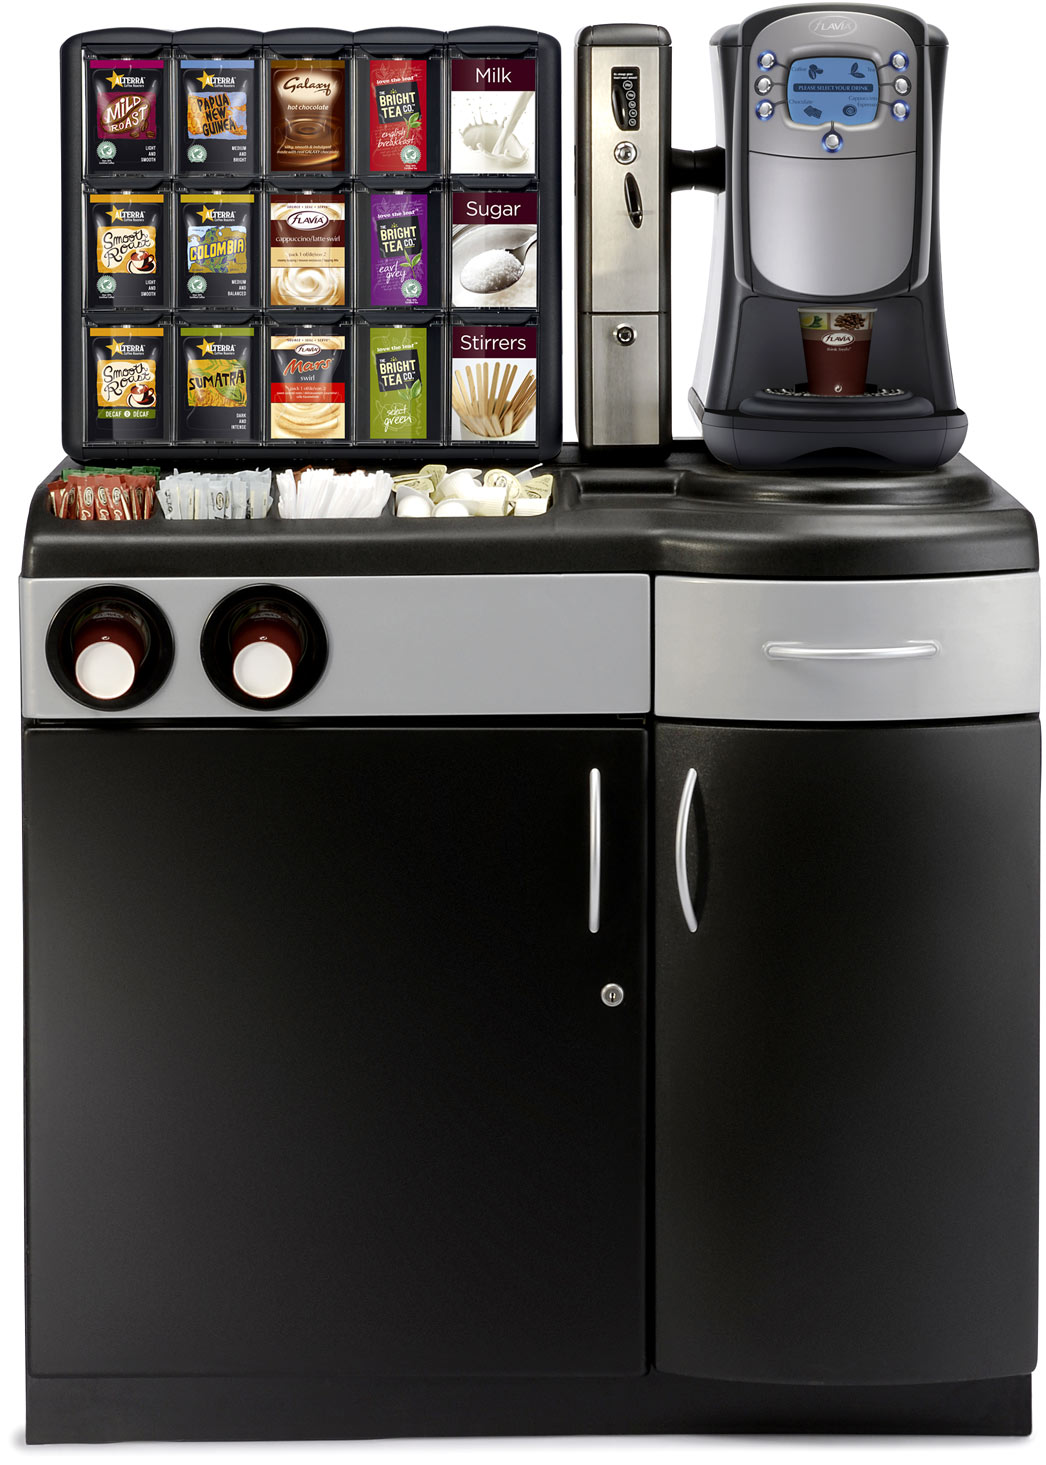 Flavia Coffee Maker How To Use : Flavia Creation 400 Machine (Titanium) - Flavia Machines - Intelligent Vending Ltd